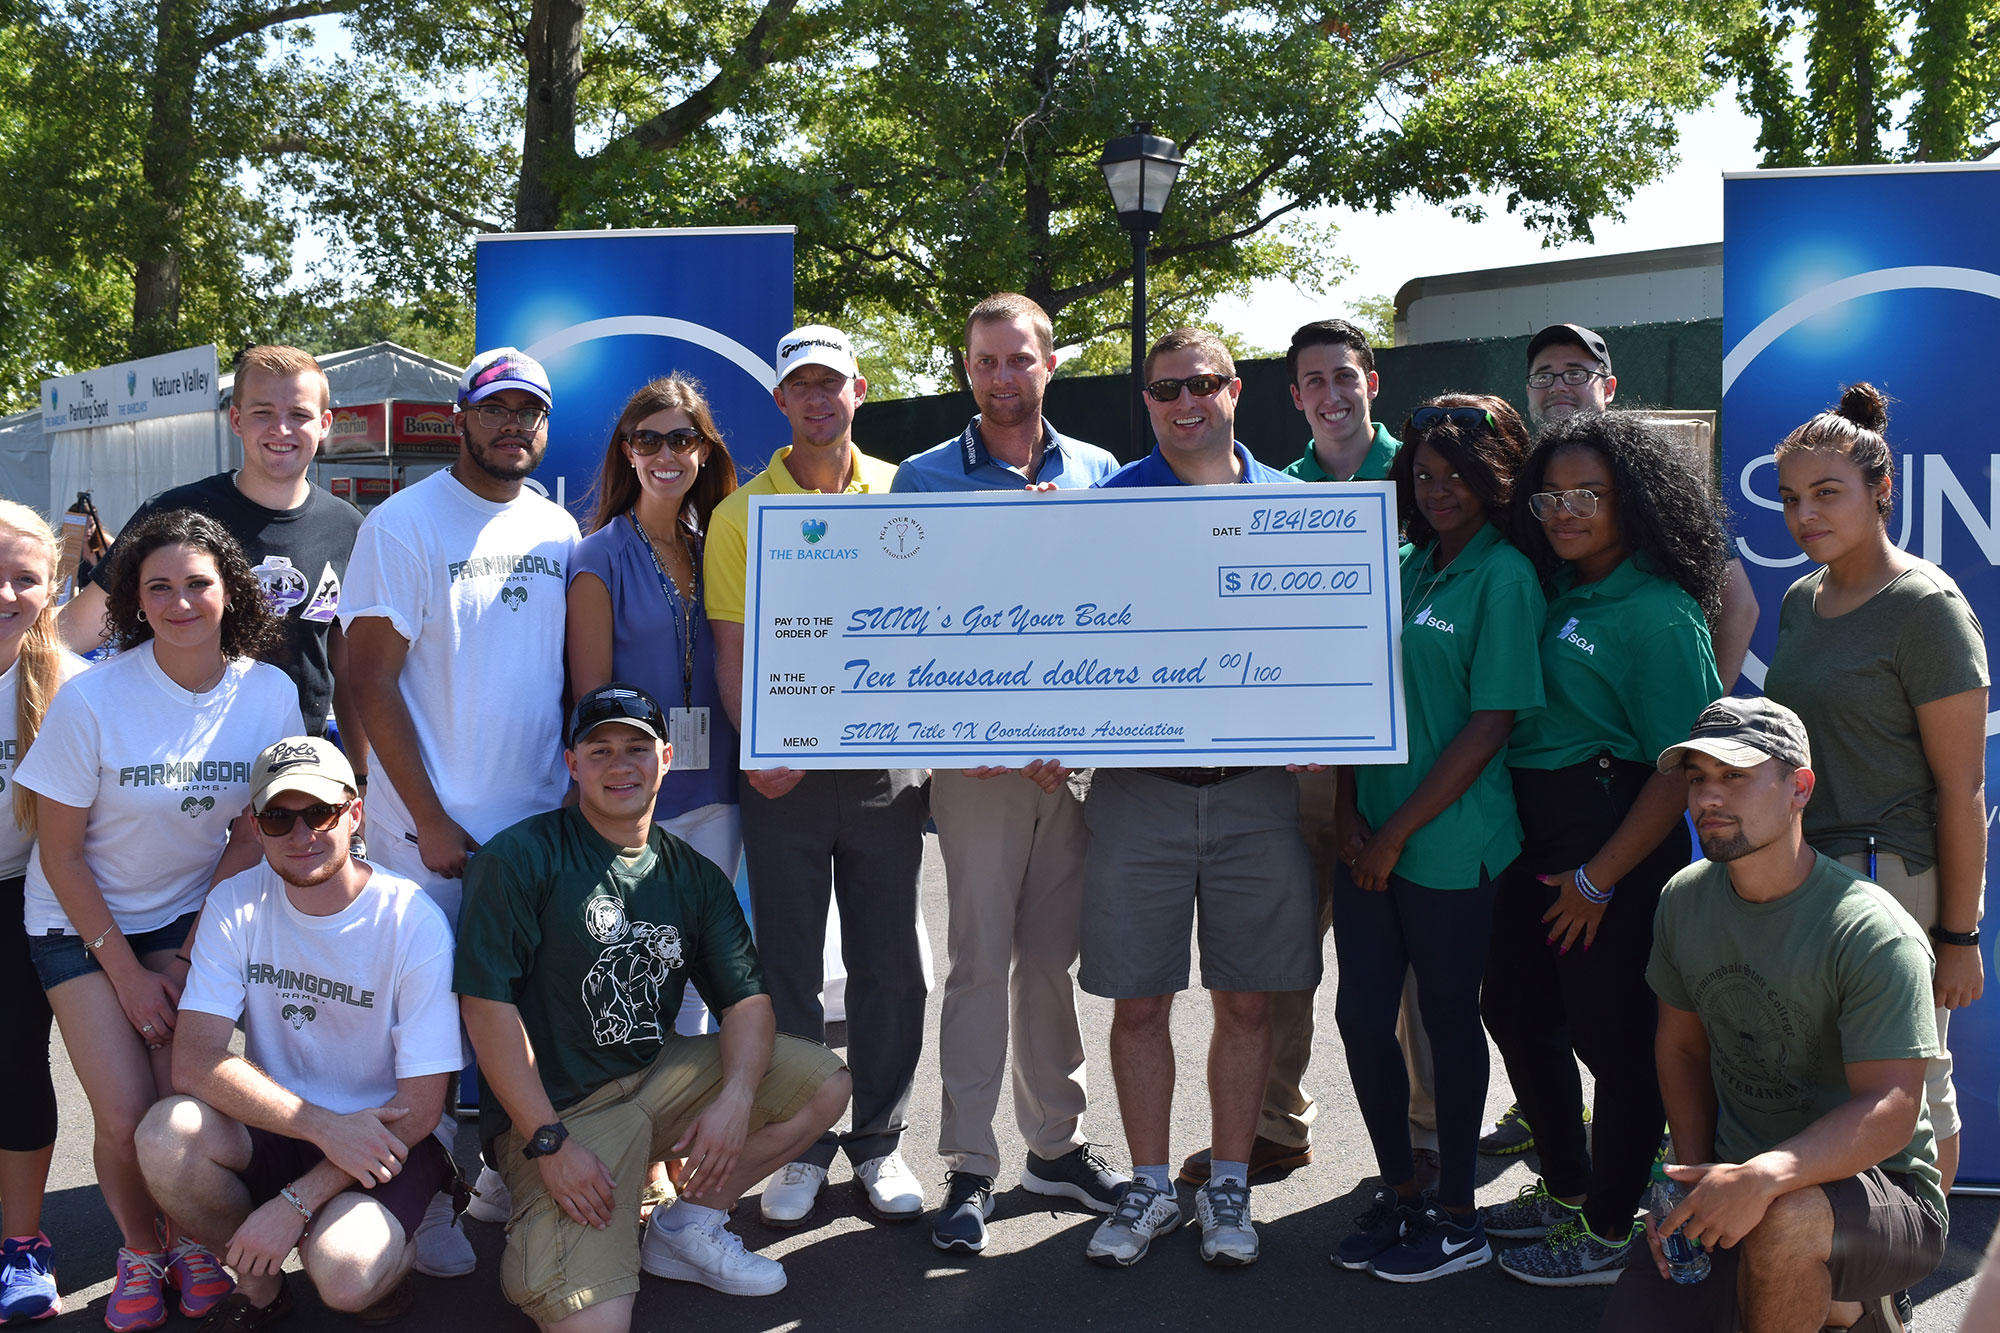 A large check is presnted to the SUNY 's Got Your Back volunteers at The Barclays.